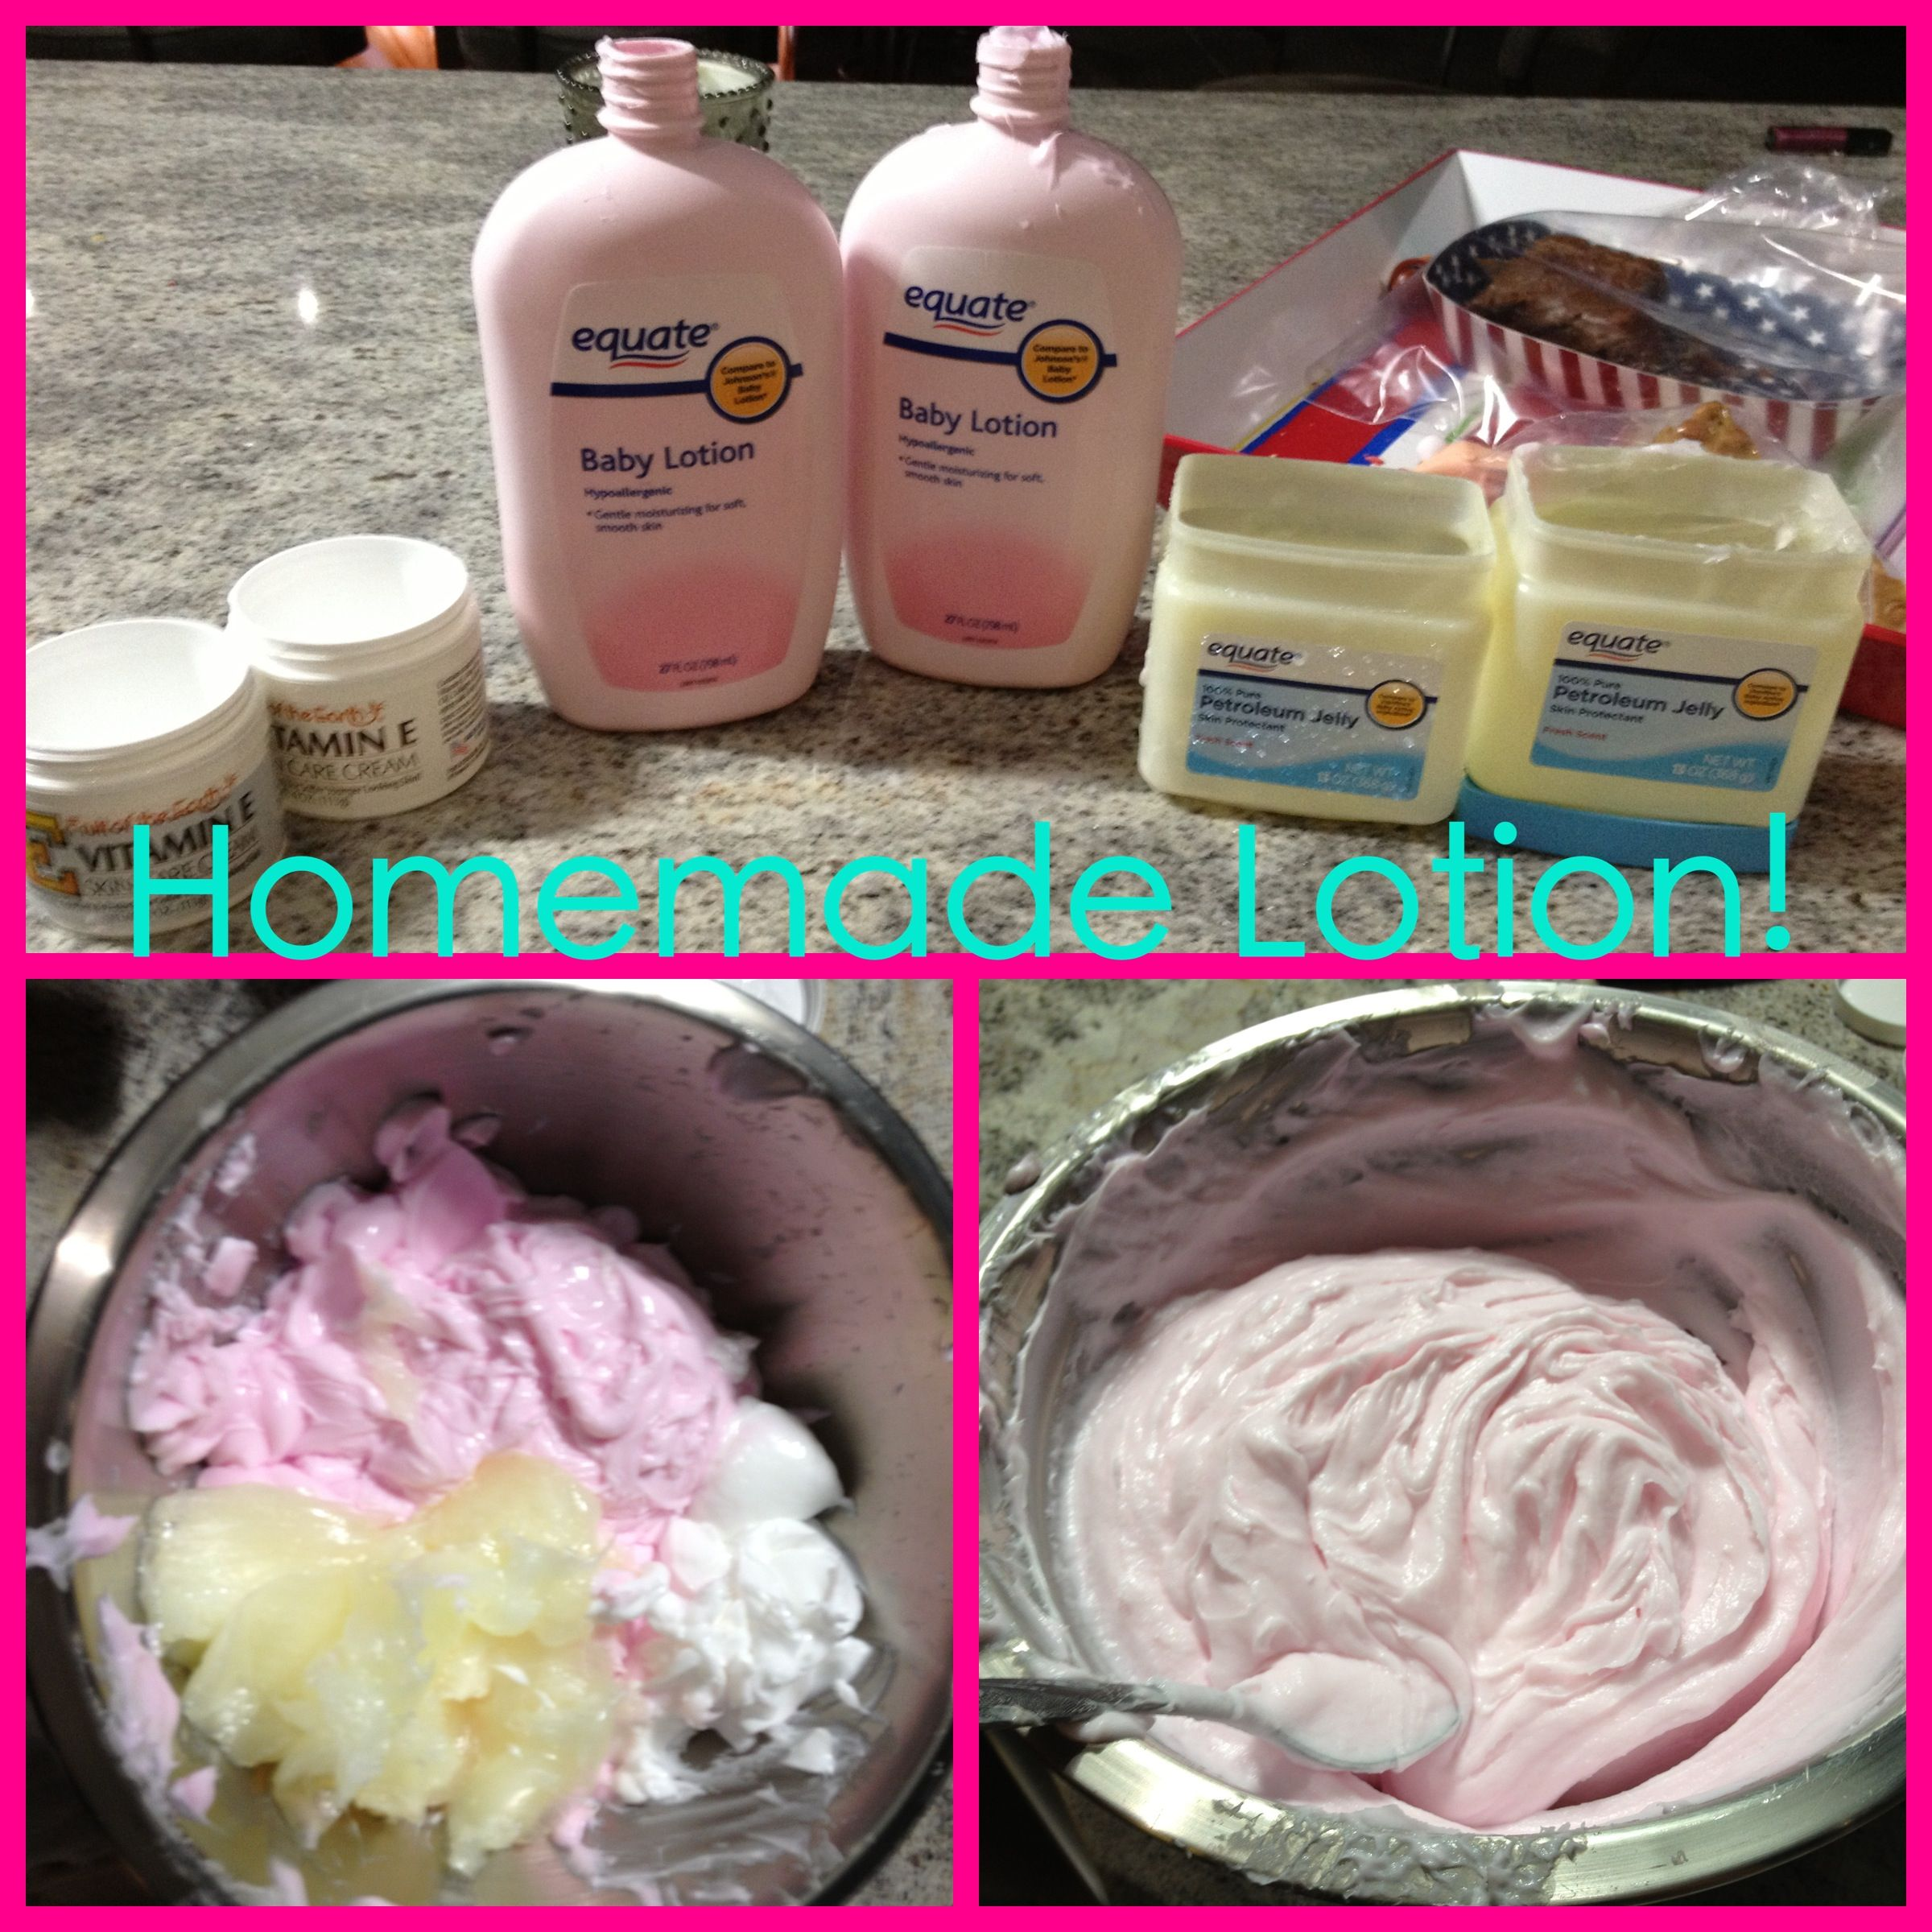 Three easy steps to HOMEMADE LOTION! All you need is 2 Bottles of Baby Lotion